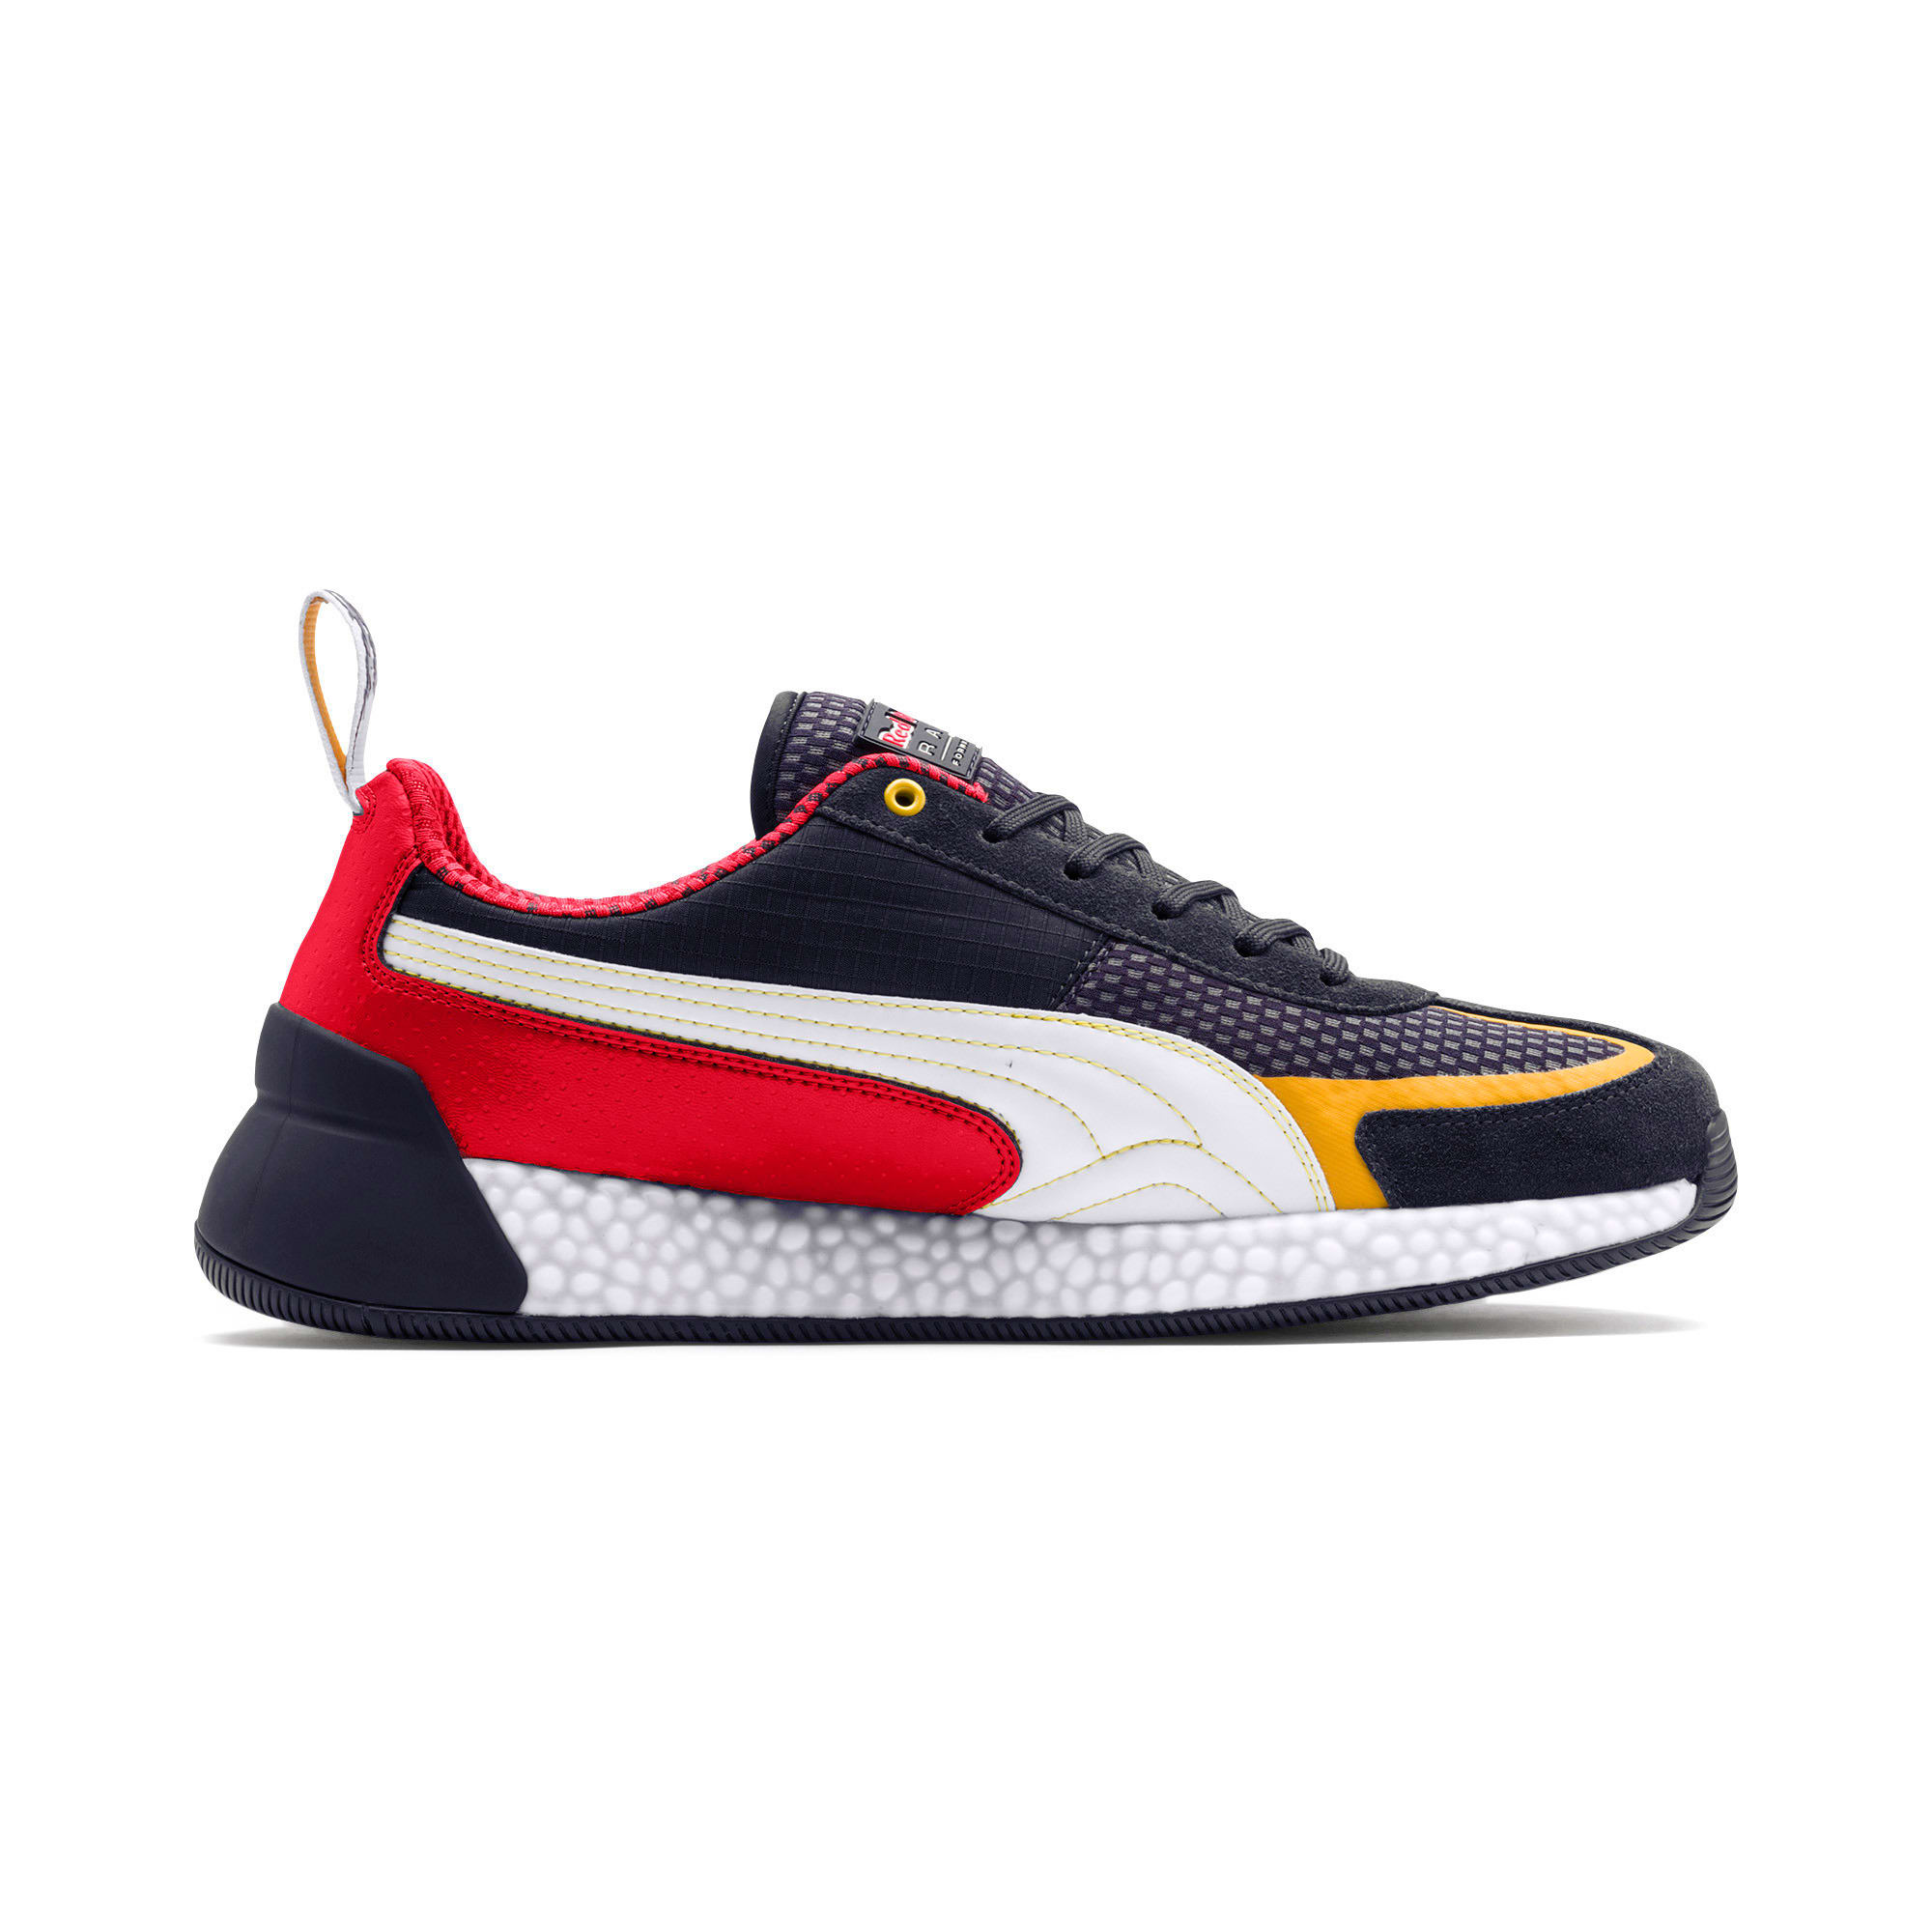 Thumbnail 6 of Red Bull Racing Speed HYBRID Men's Trainers, NIGHT SKY-White-Chinese Red, medium